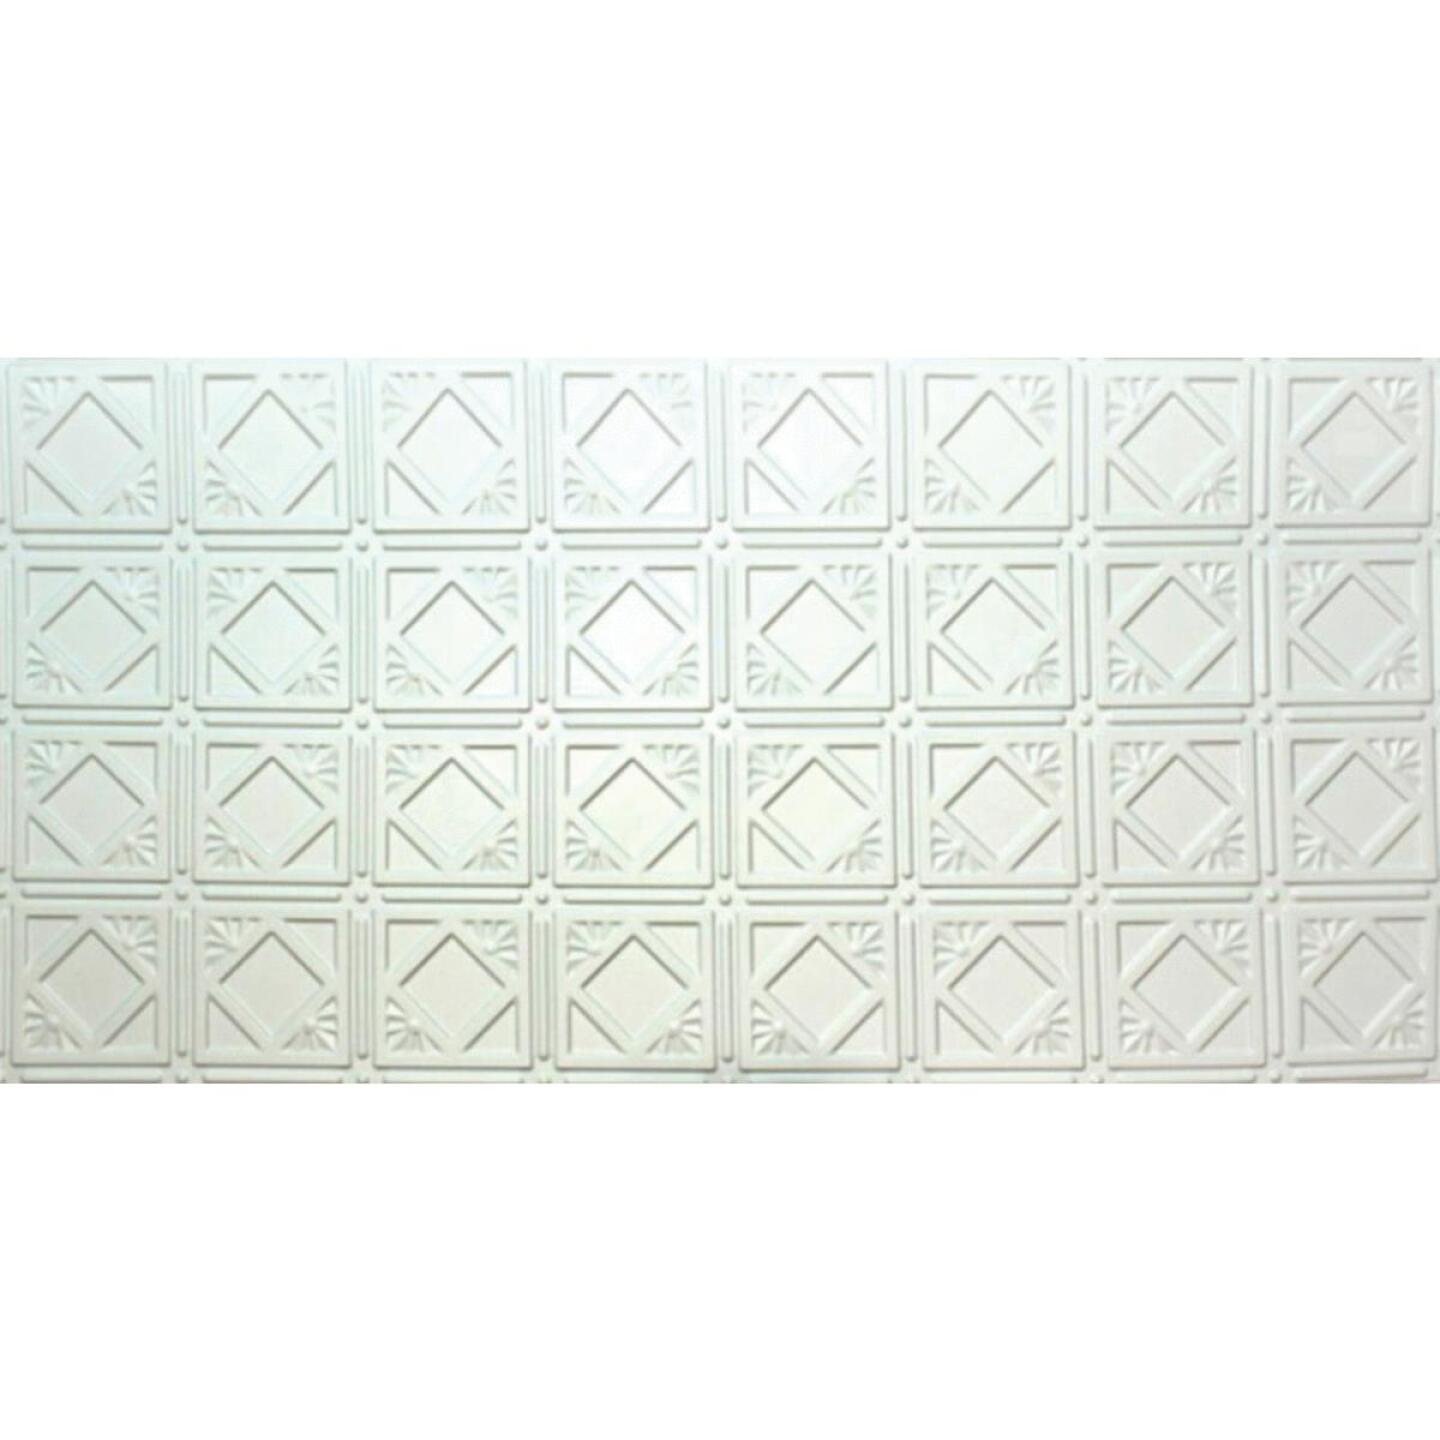 Dimensions 2 Ft. x 4 Ft. White 6 In. Diamond Pattern Tin Look Nonsuspended Ceiling Tile & Backsplash Image 1